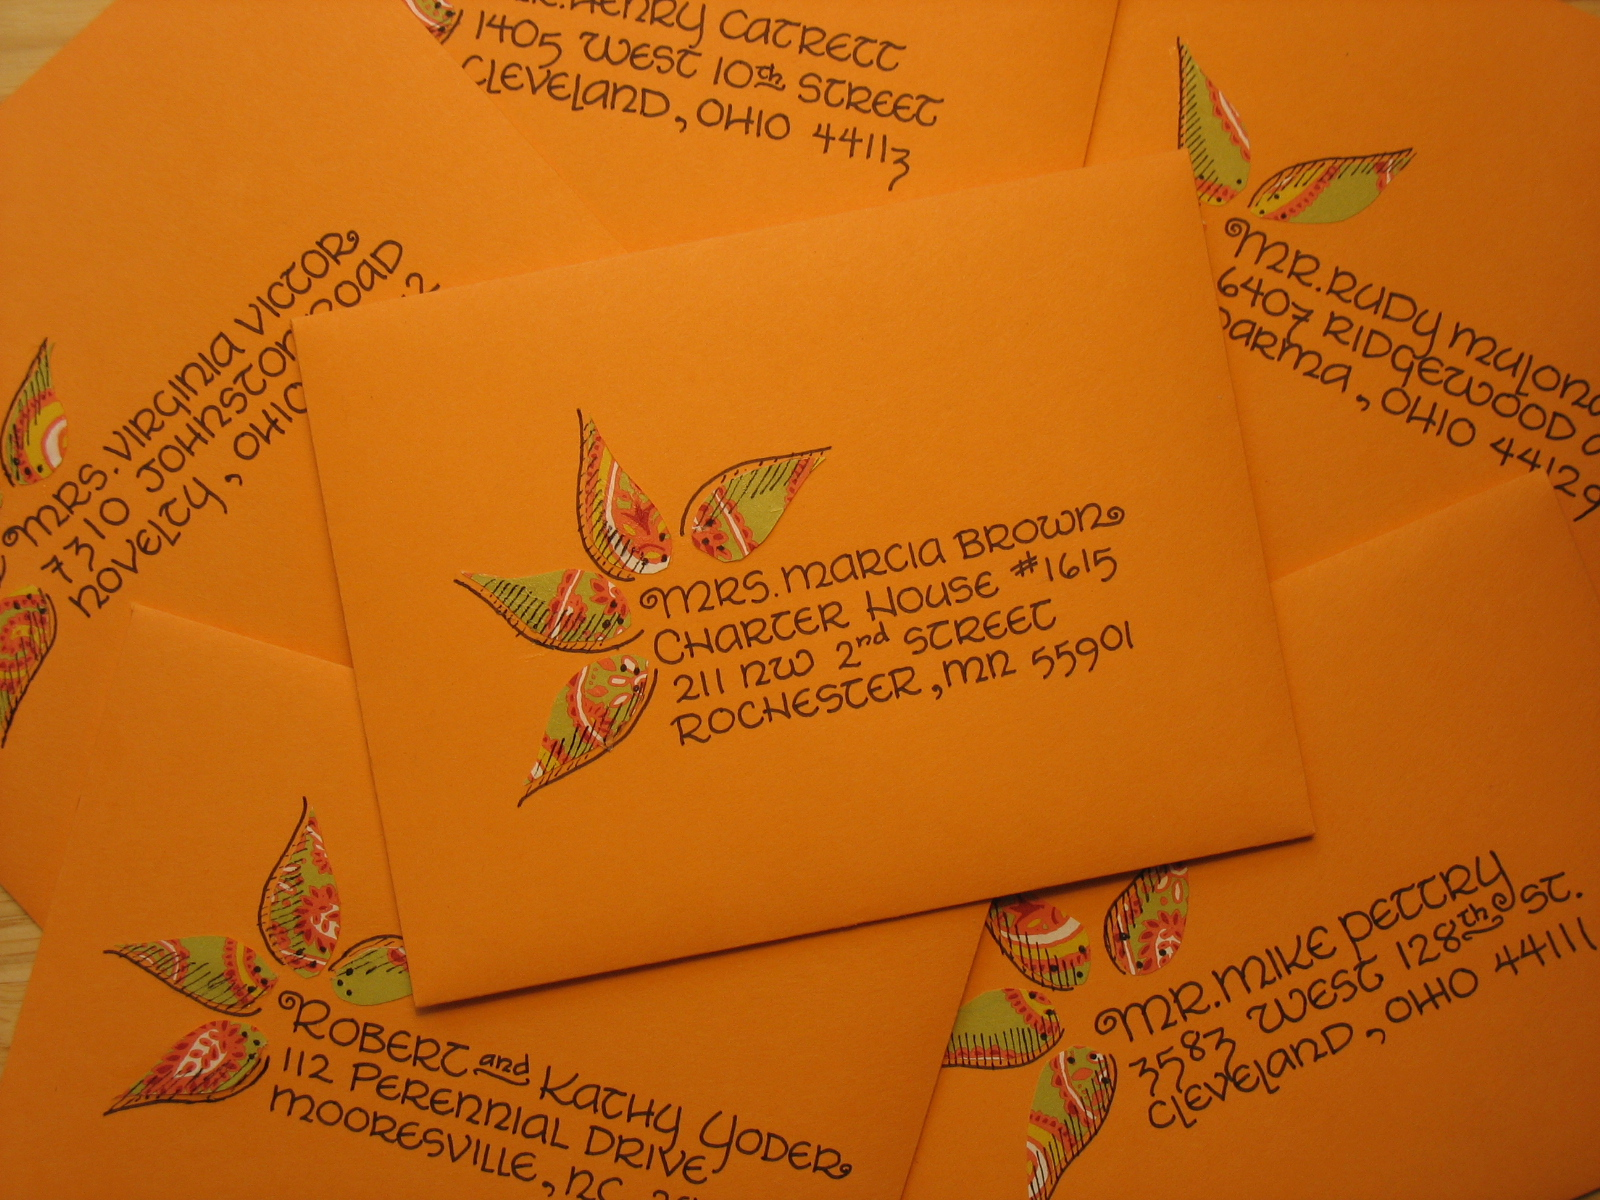 Wedding invitation addresses + paper leaf embellishment